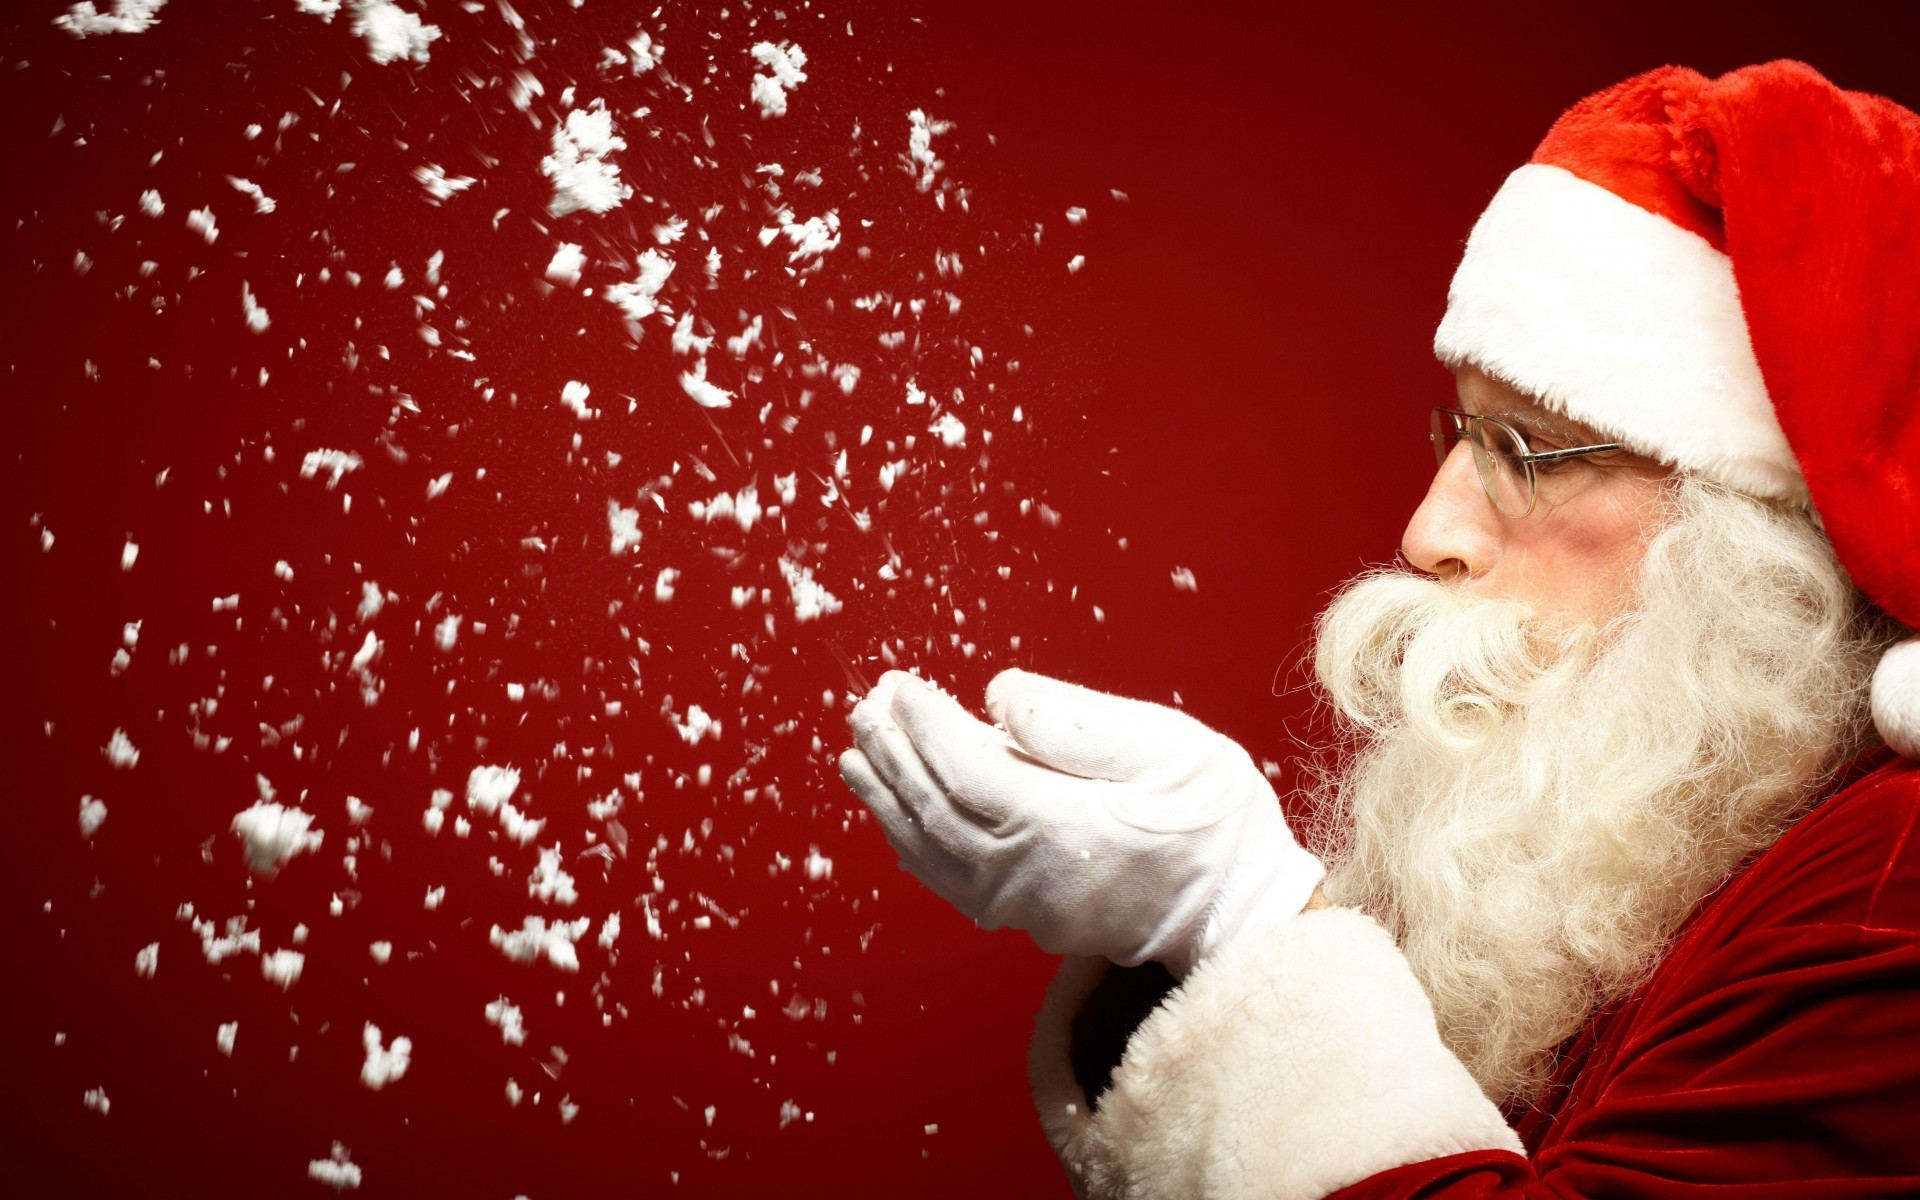 best collection of Santa Claus Wallpaper